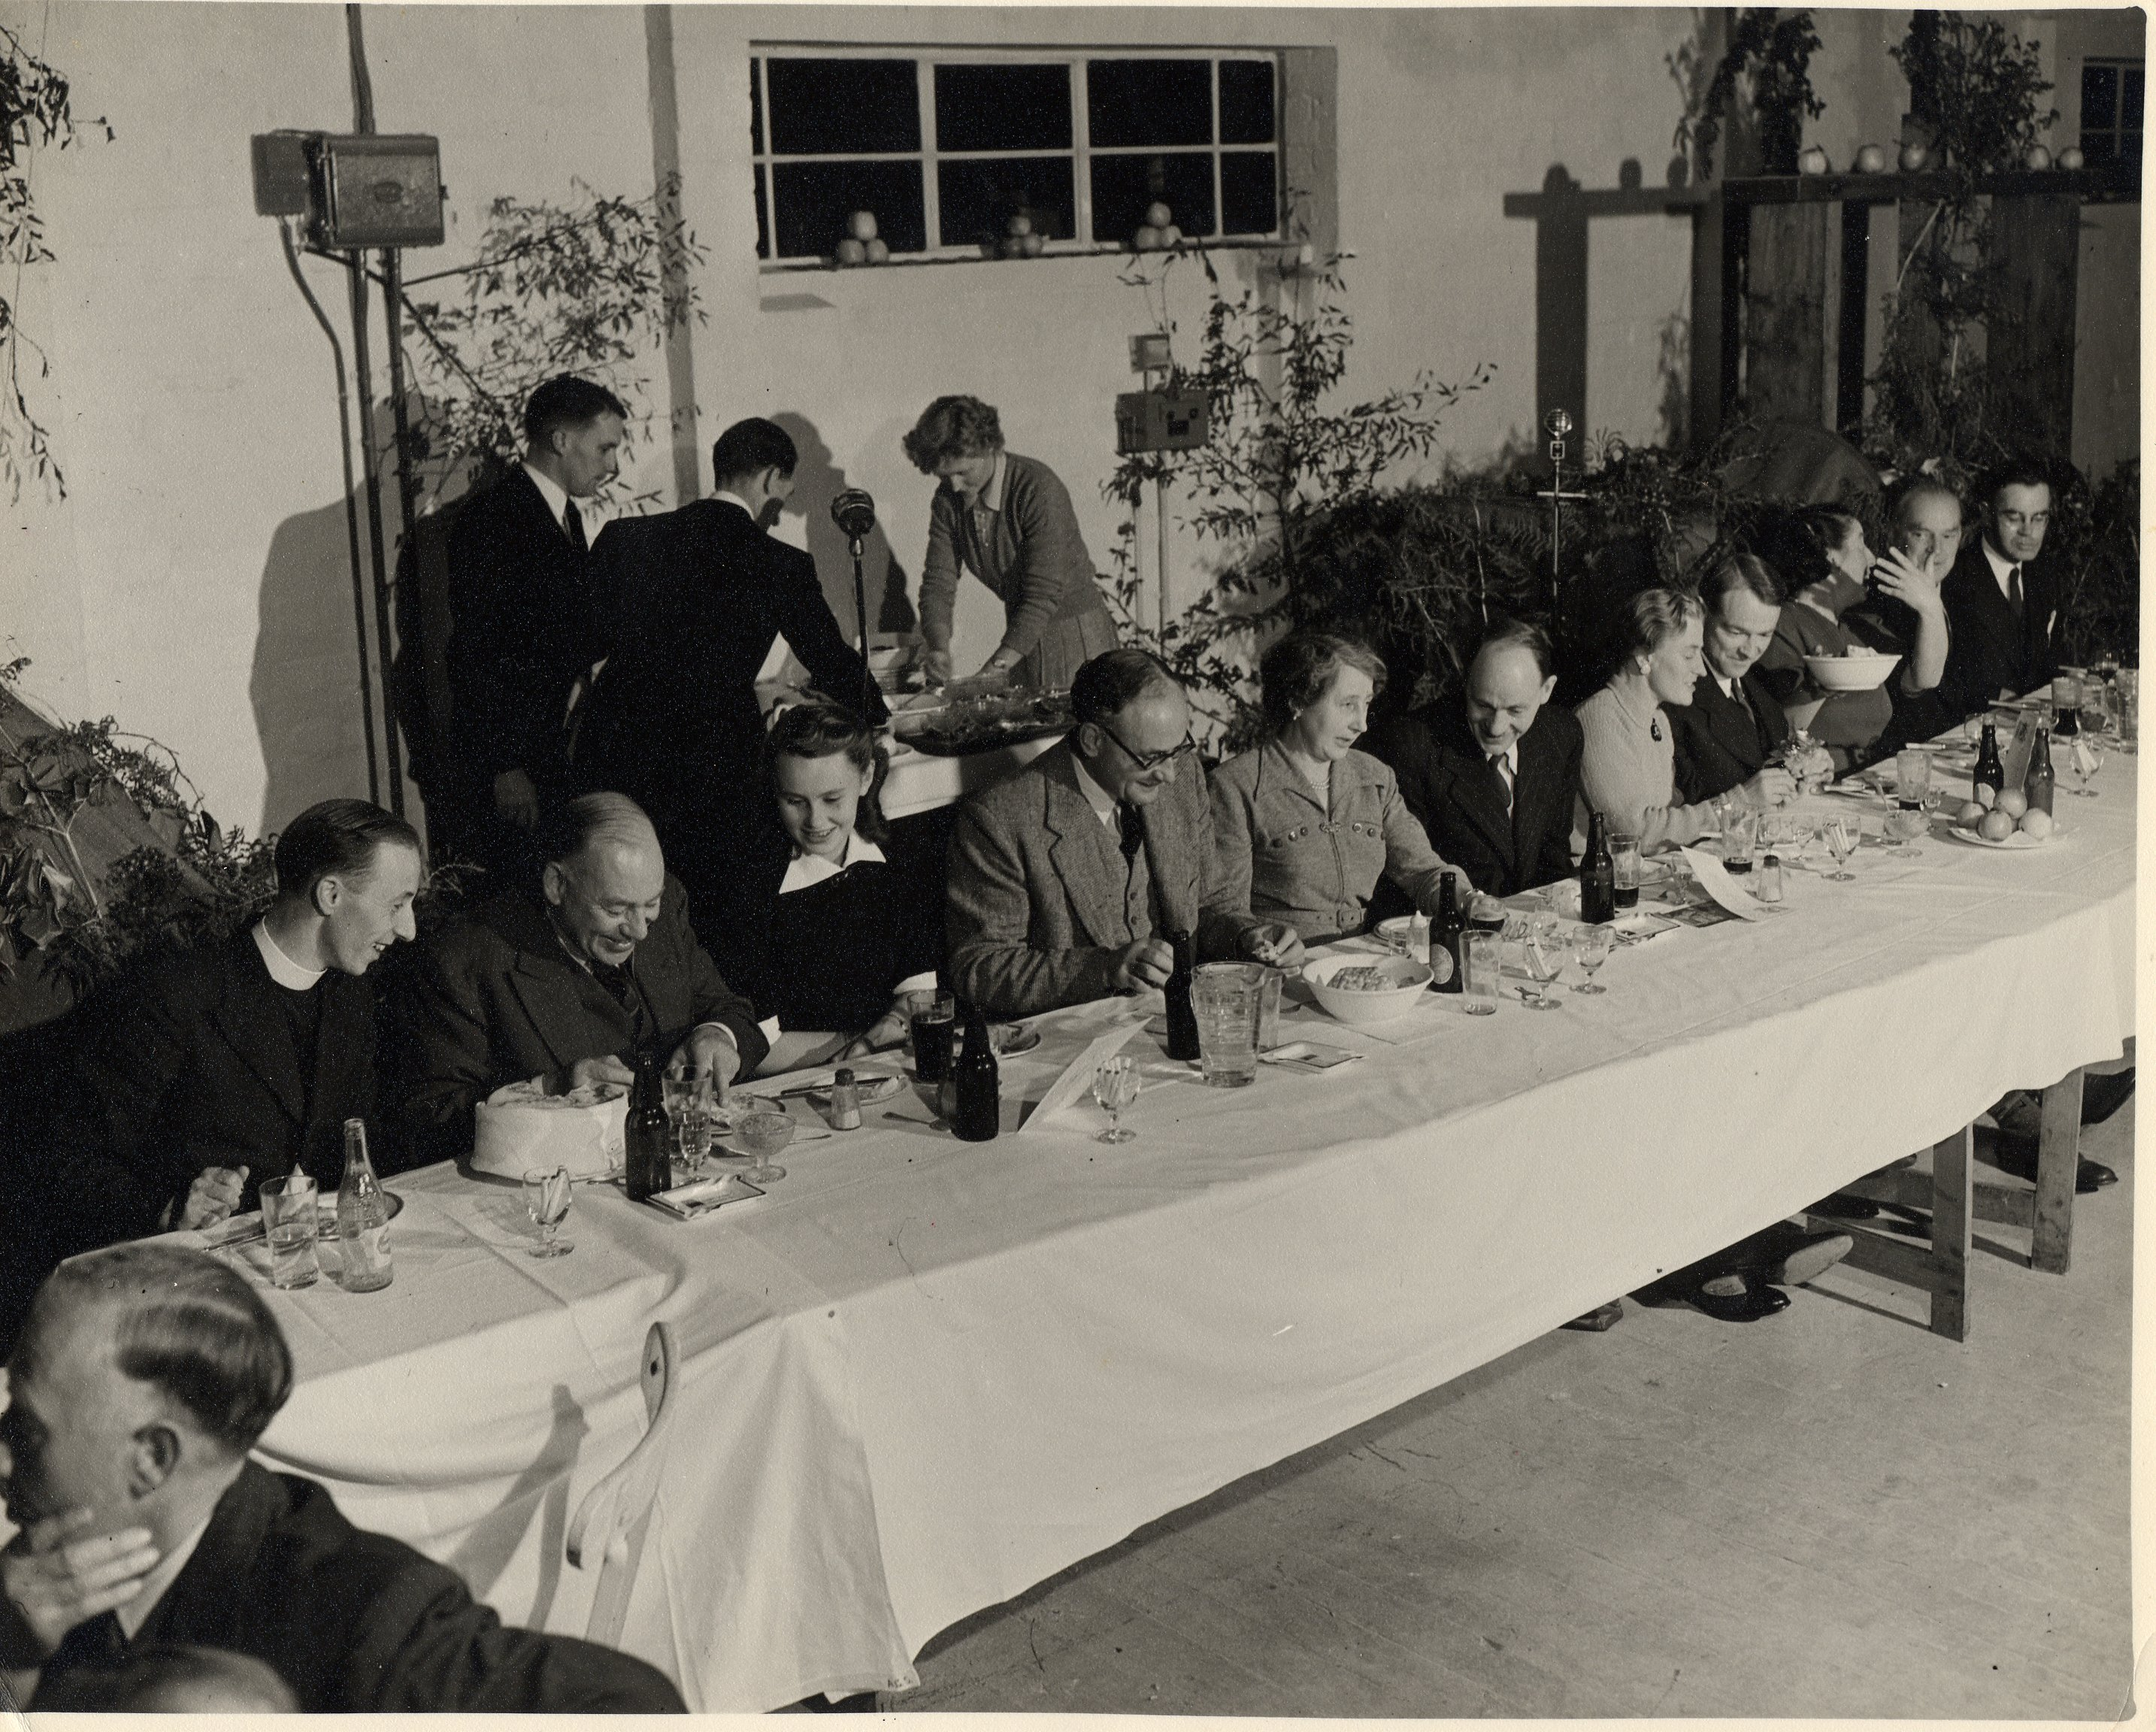 Harvest supper, possibly 1952, New House Oast, Bodiam. From http://www.bygonebodiam.co.uk